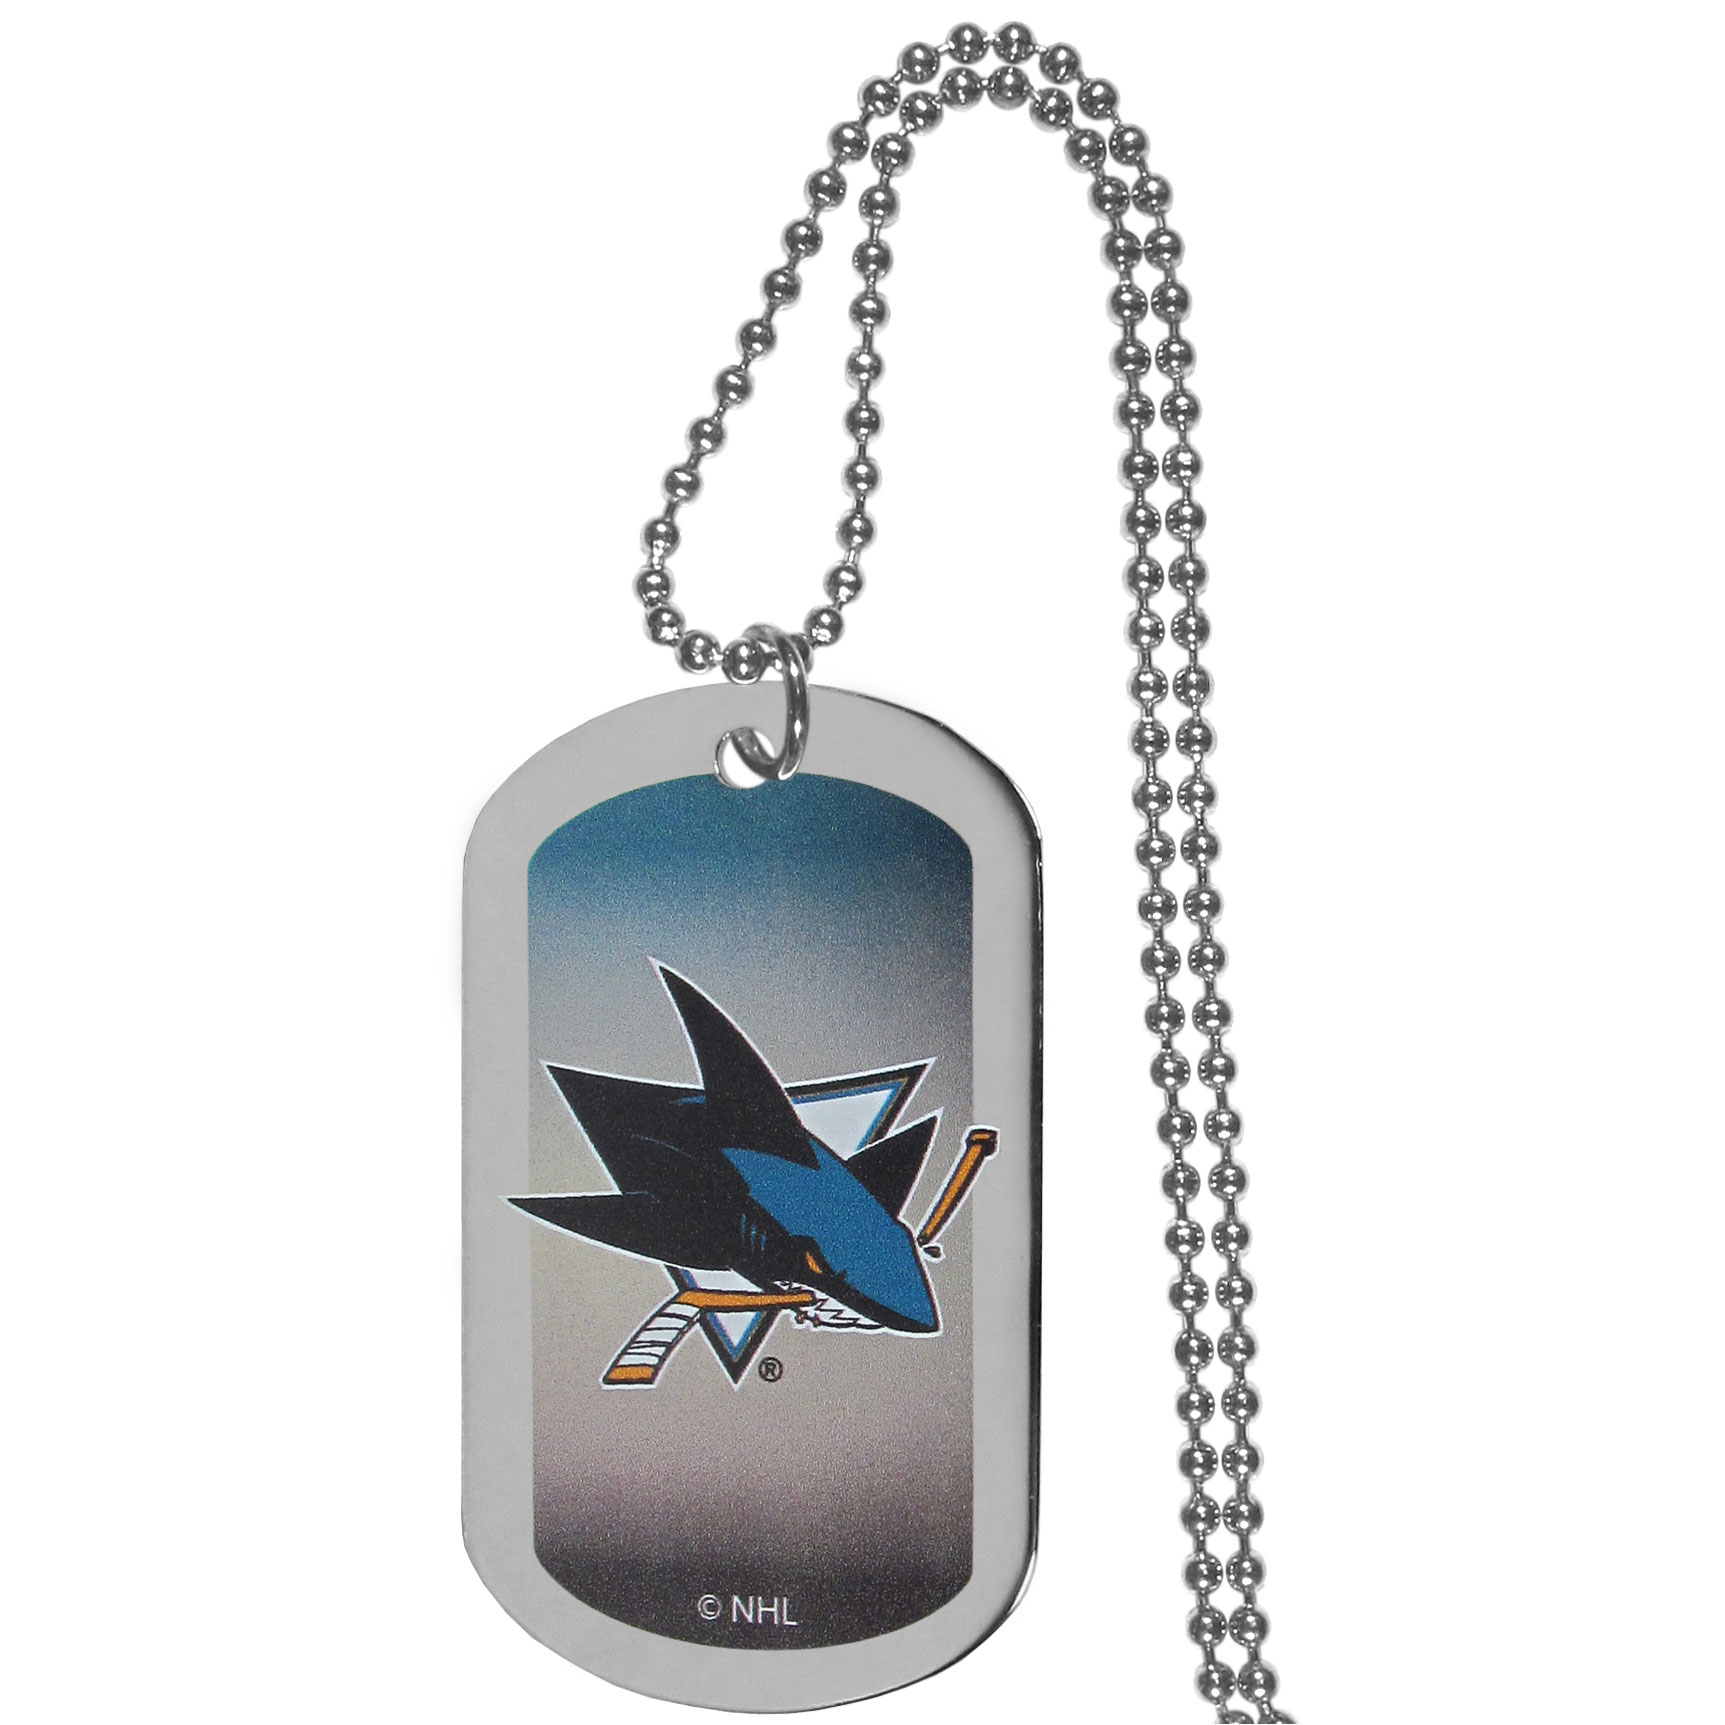 San Jose Sharks® Team Tag Necklace - Dog tag necklaces are a fashion statement that is here to stay. The sporty version of the classic tag features a gradient print in team colors featuring a full color team logo over a high polish tag to create a bold and sporty look. The tag comes on a 26 inch ball chain with a ball and joint clasp. Any San Jose Sharks® would be proud to wear this attractive fashion accessory.